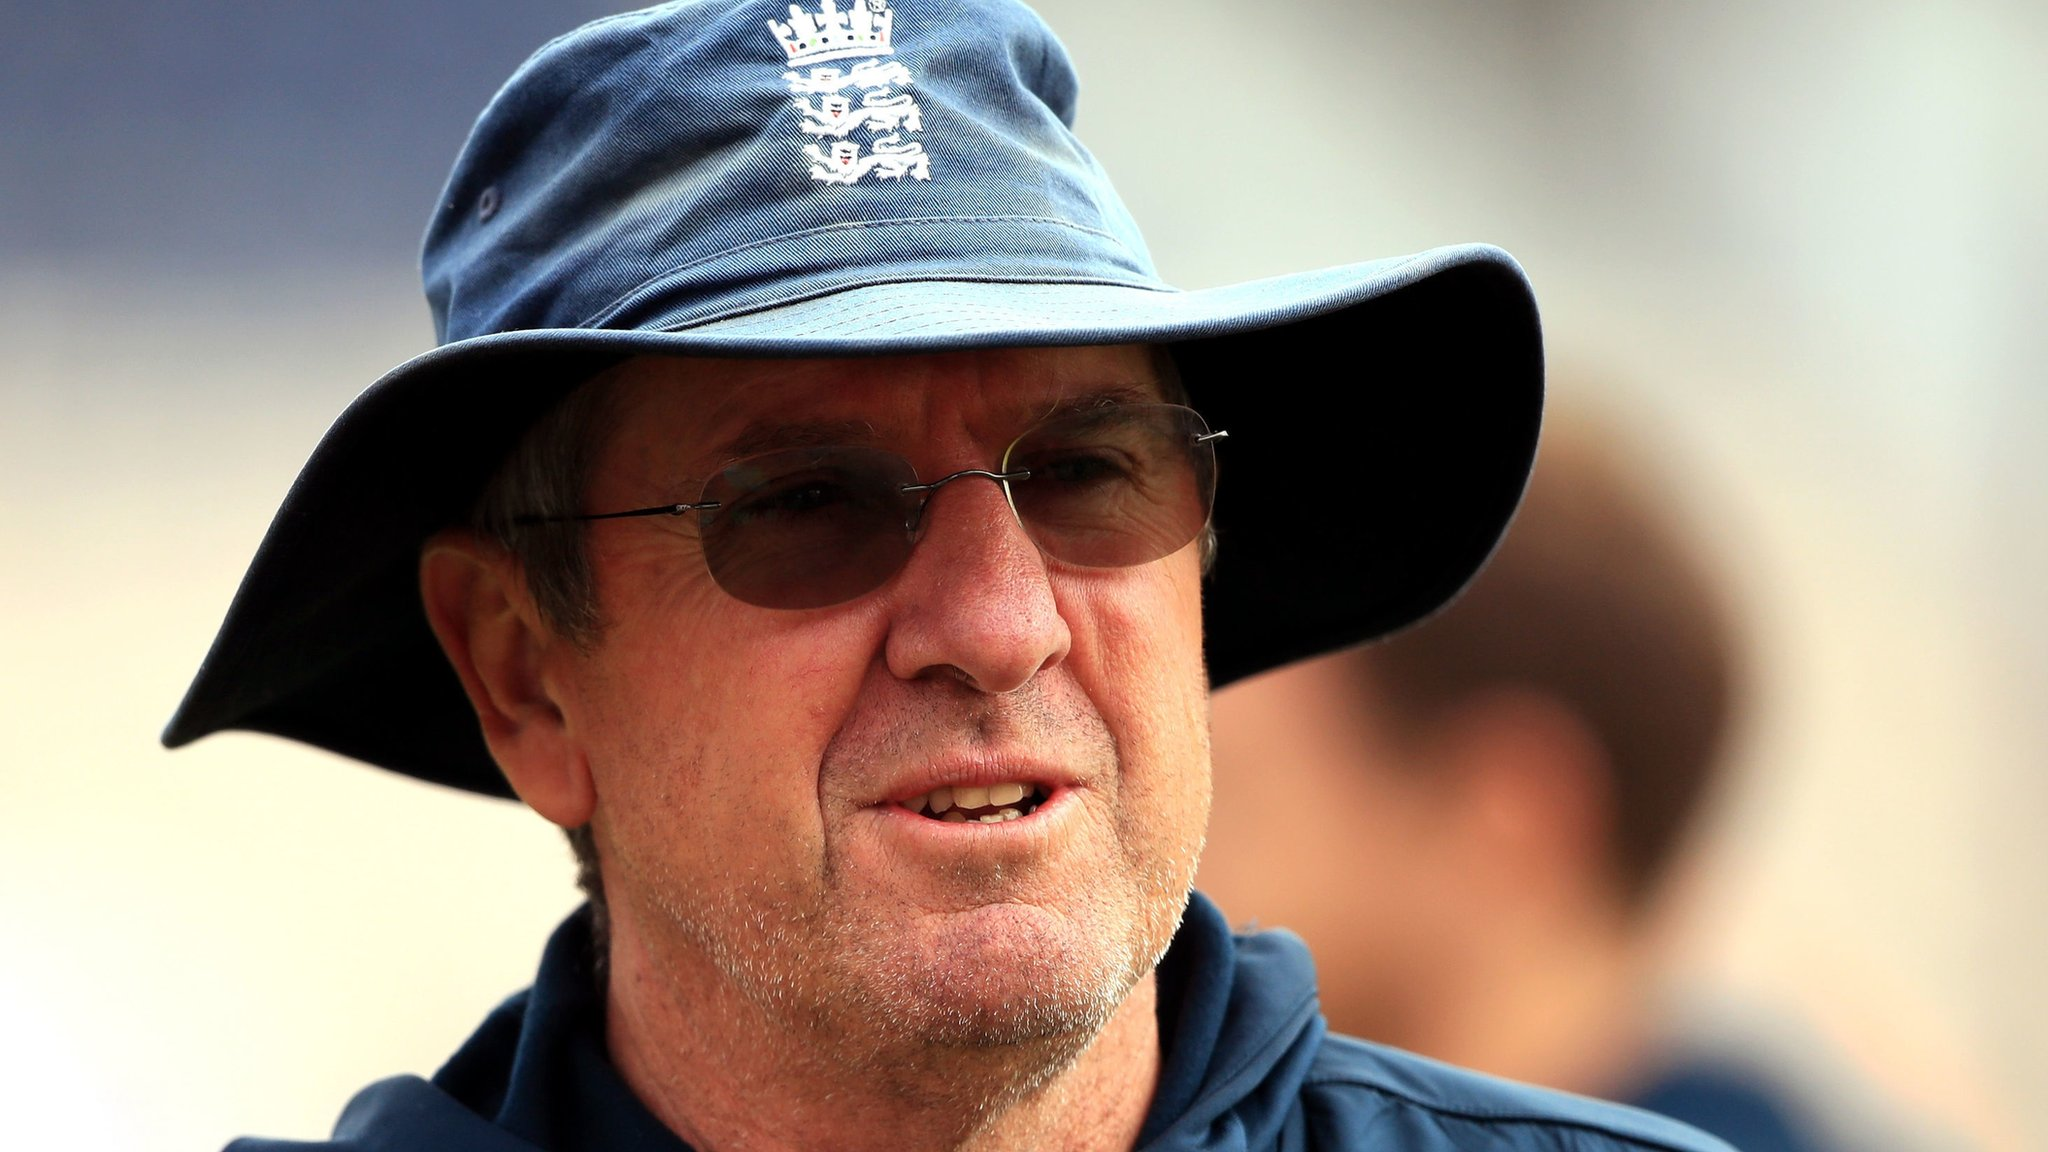 Cricket World Cup: England still confident - Trevor Bayliss